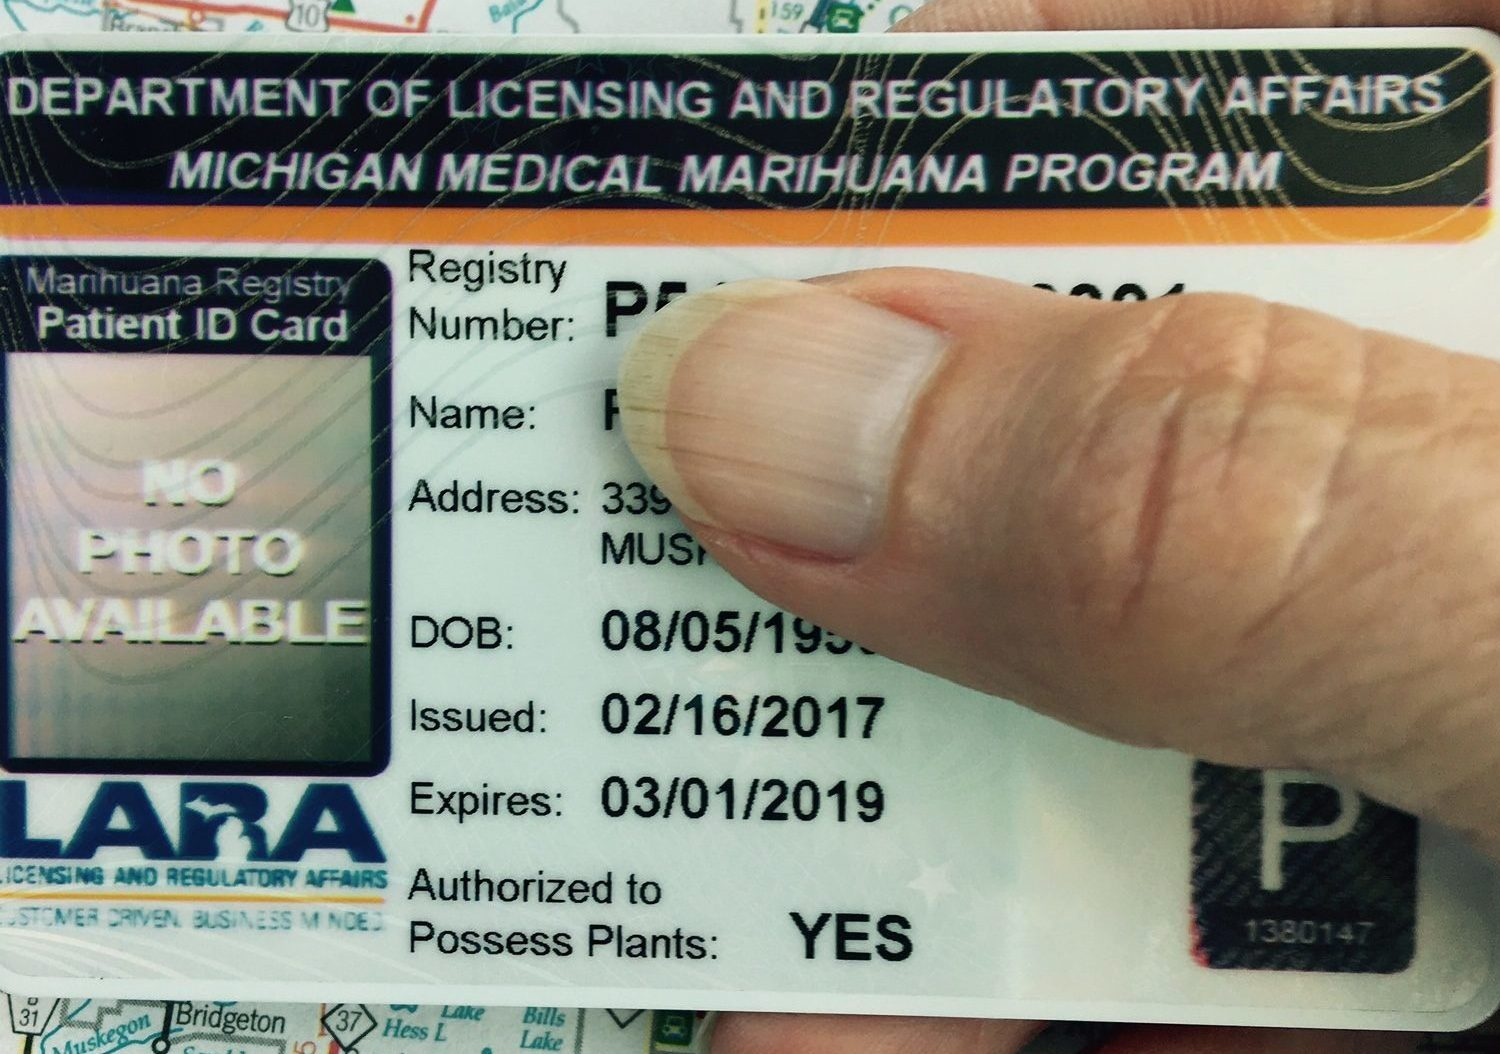 A Michigan Medical Marijuana card which helped pay for a public health campaign with cannabis provisioning centers